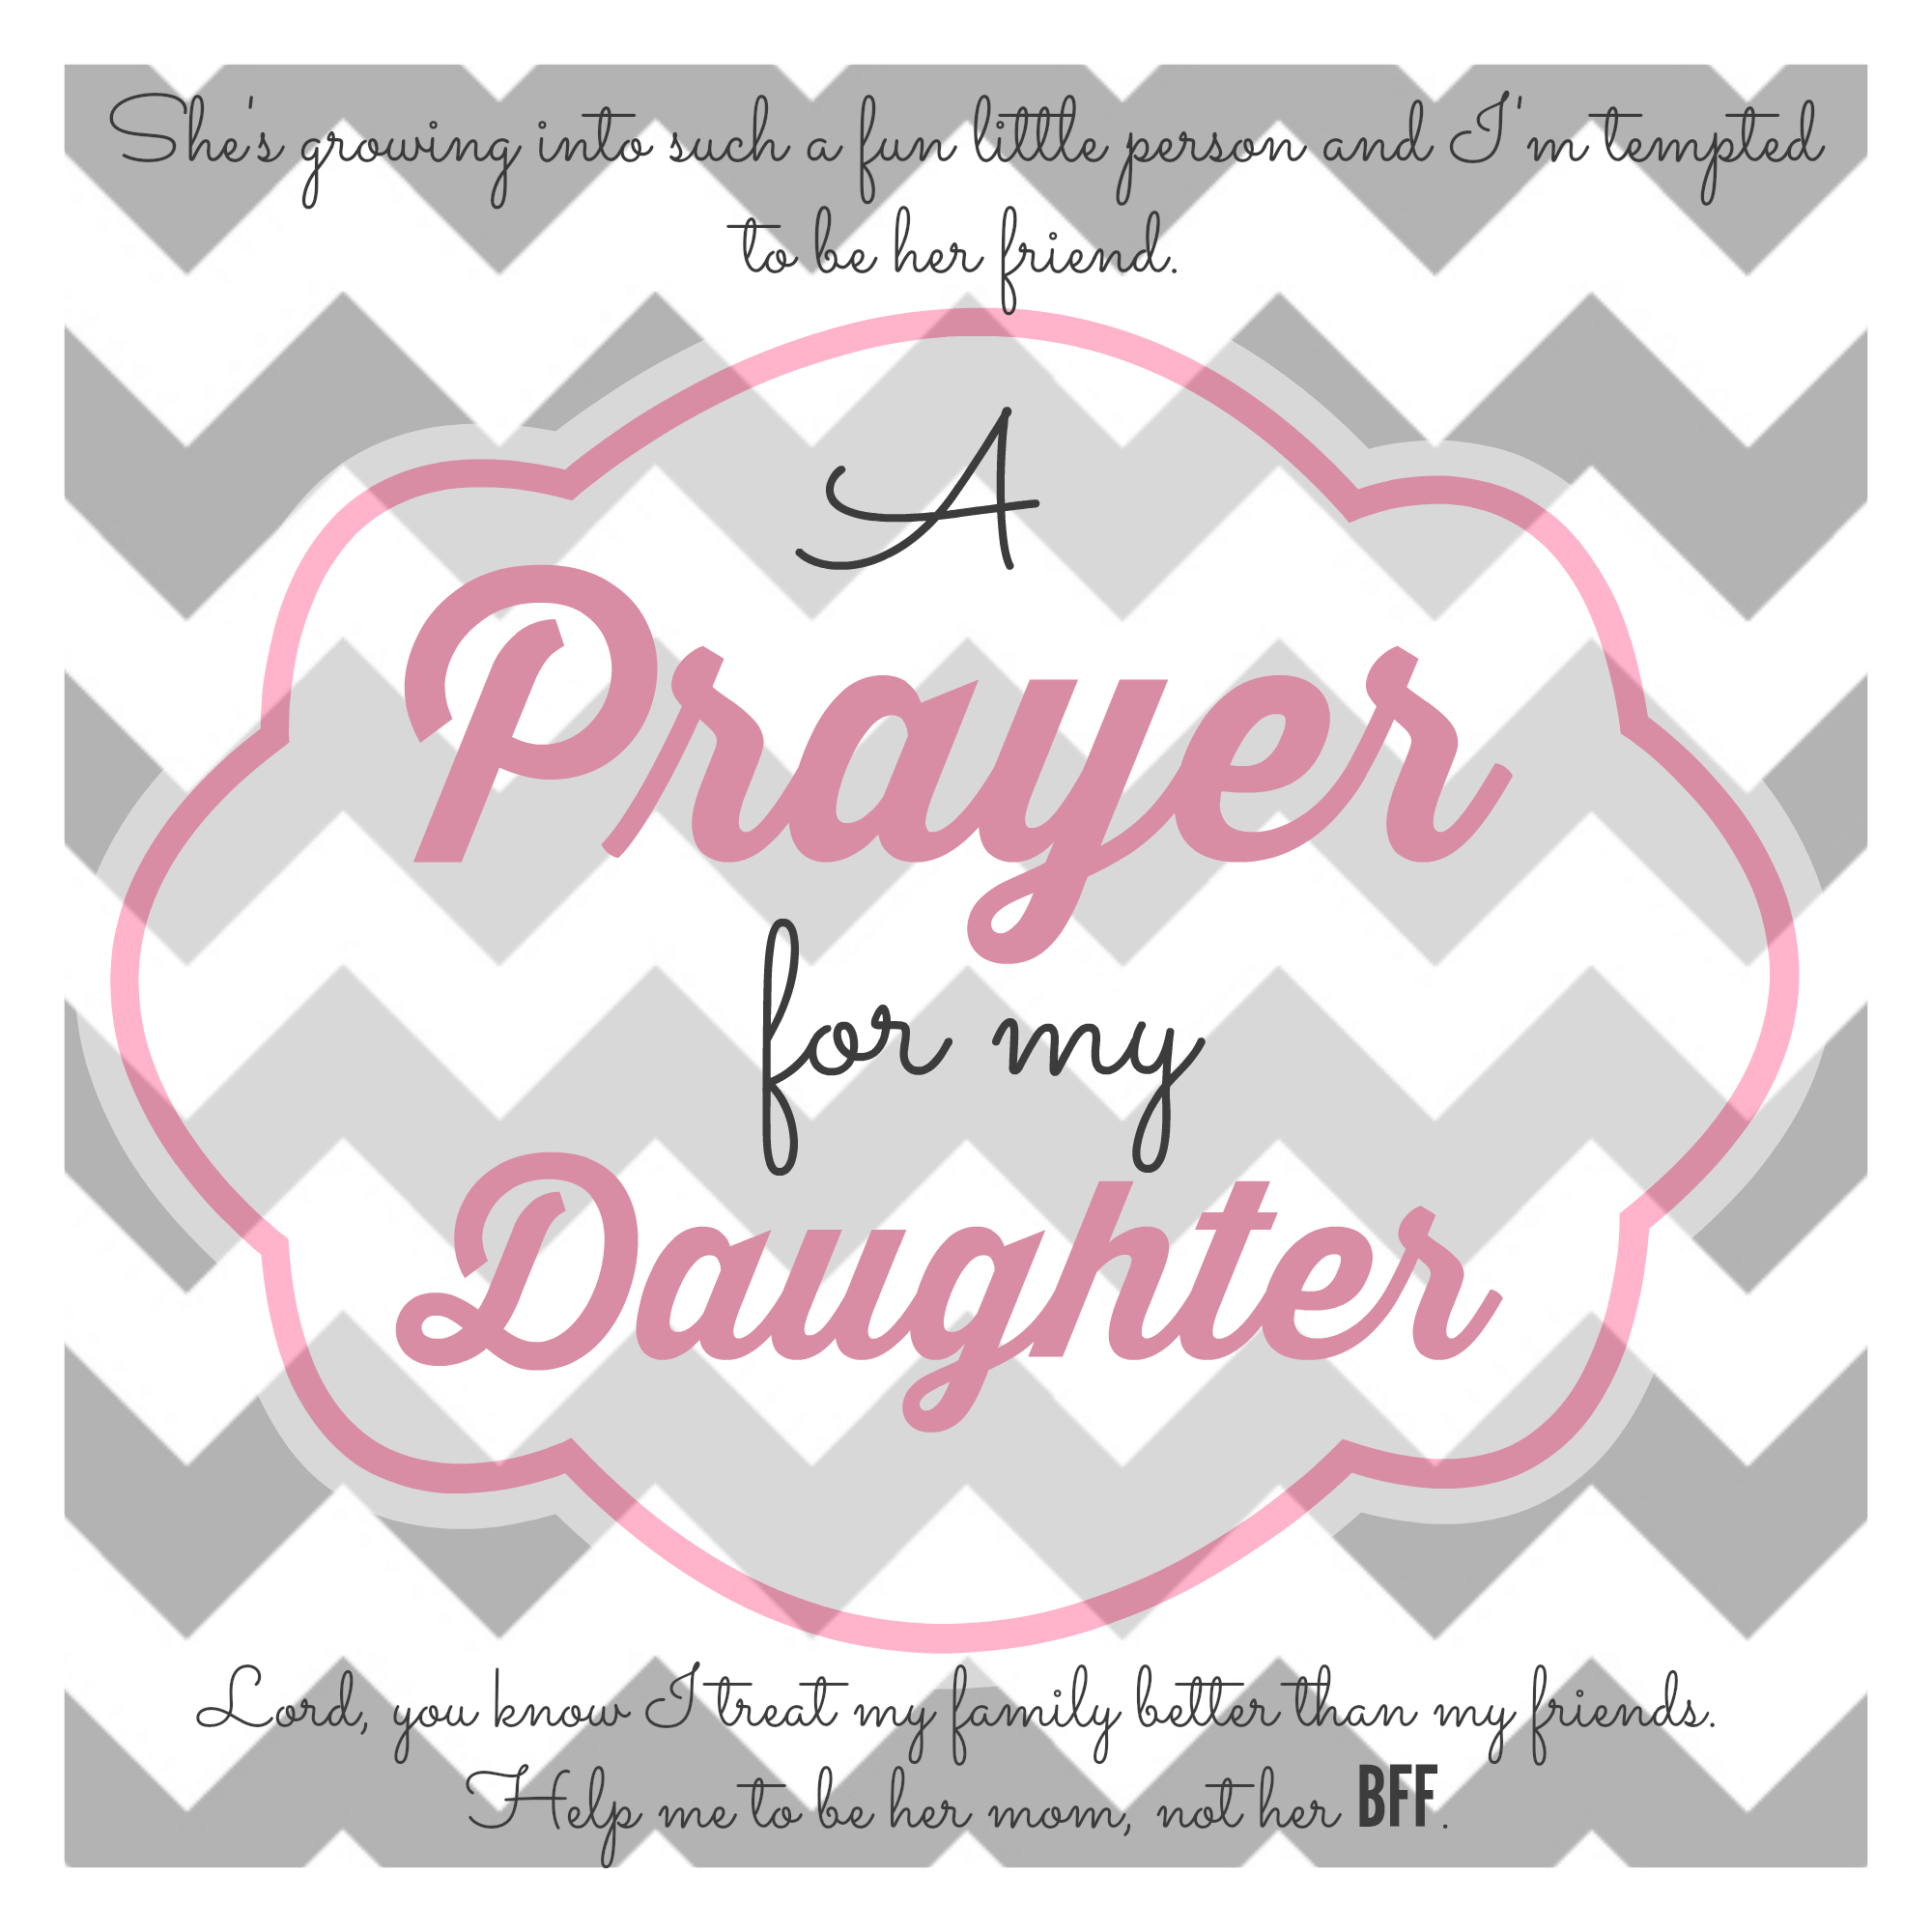 Praying for our daughters